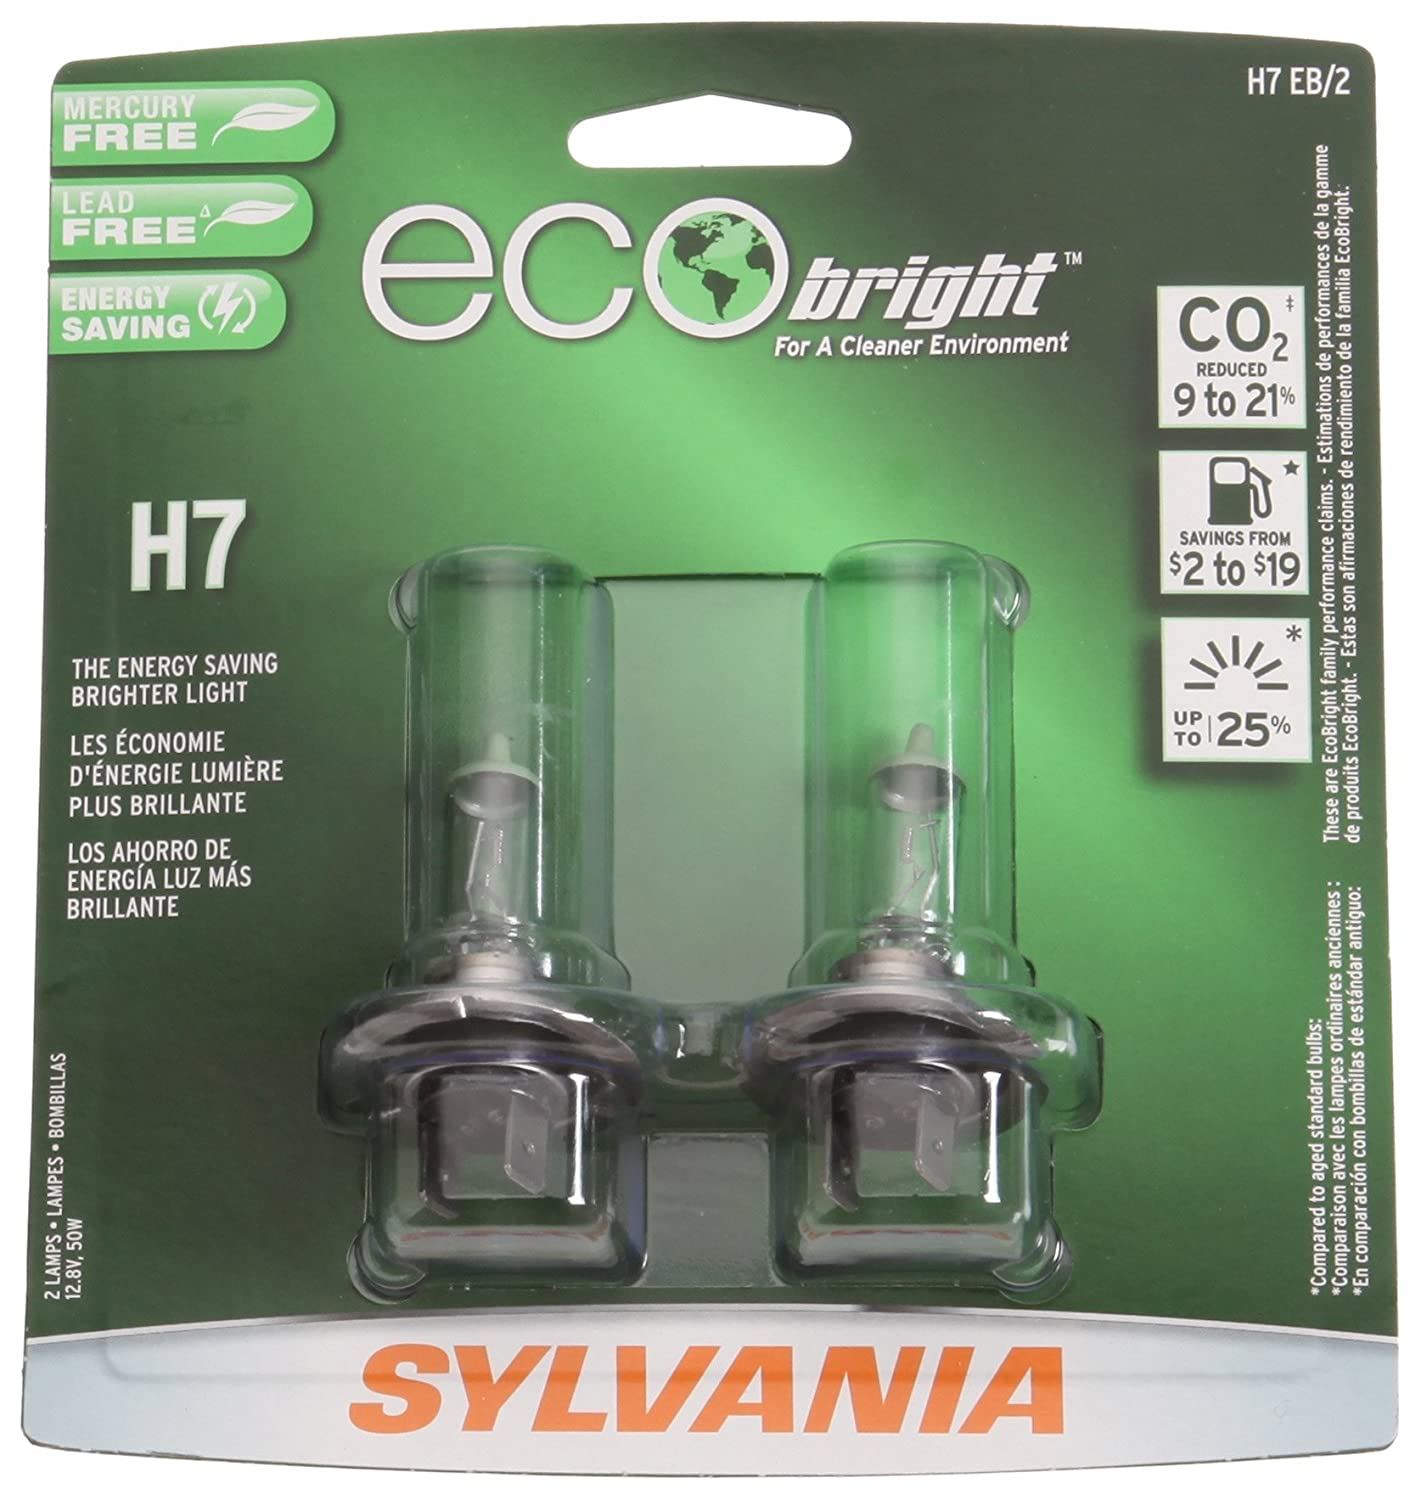 Amazon.com: Sylvania H7 EB EcoBright Replacement Bulb, (Pack of 2): Automotive